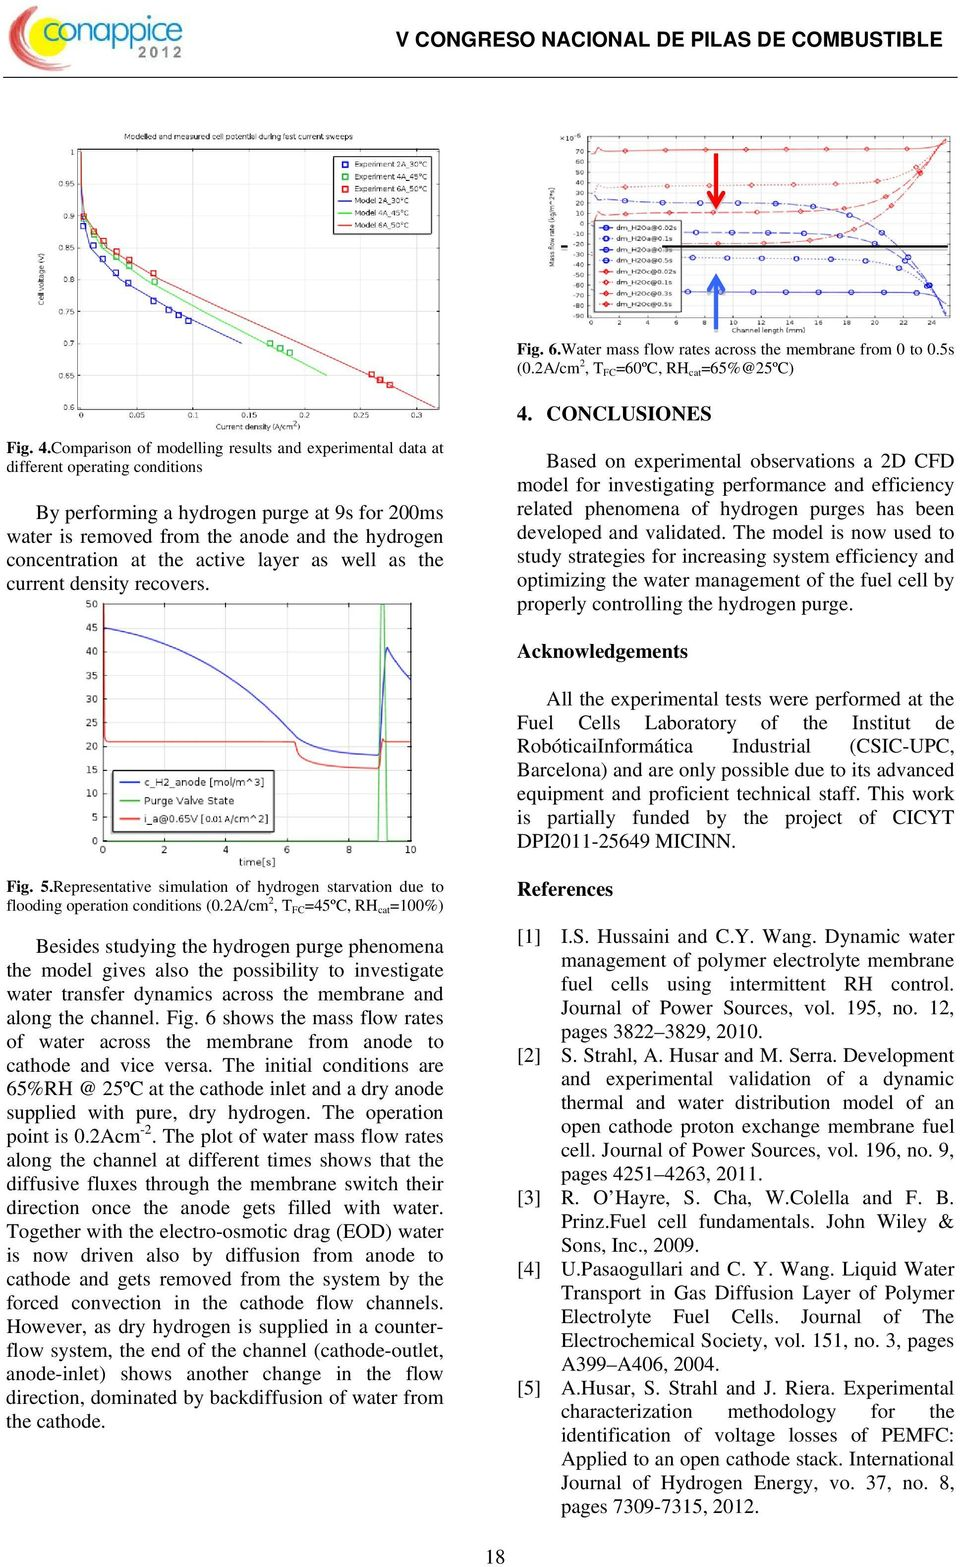 Comparison of modelling results and experimental data at different operating conditions By performing a hydrogen purge at 9s for 200ms water is removed from the anode and the hydrogen concentration